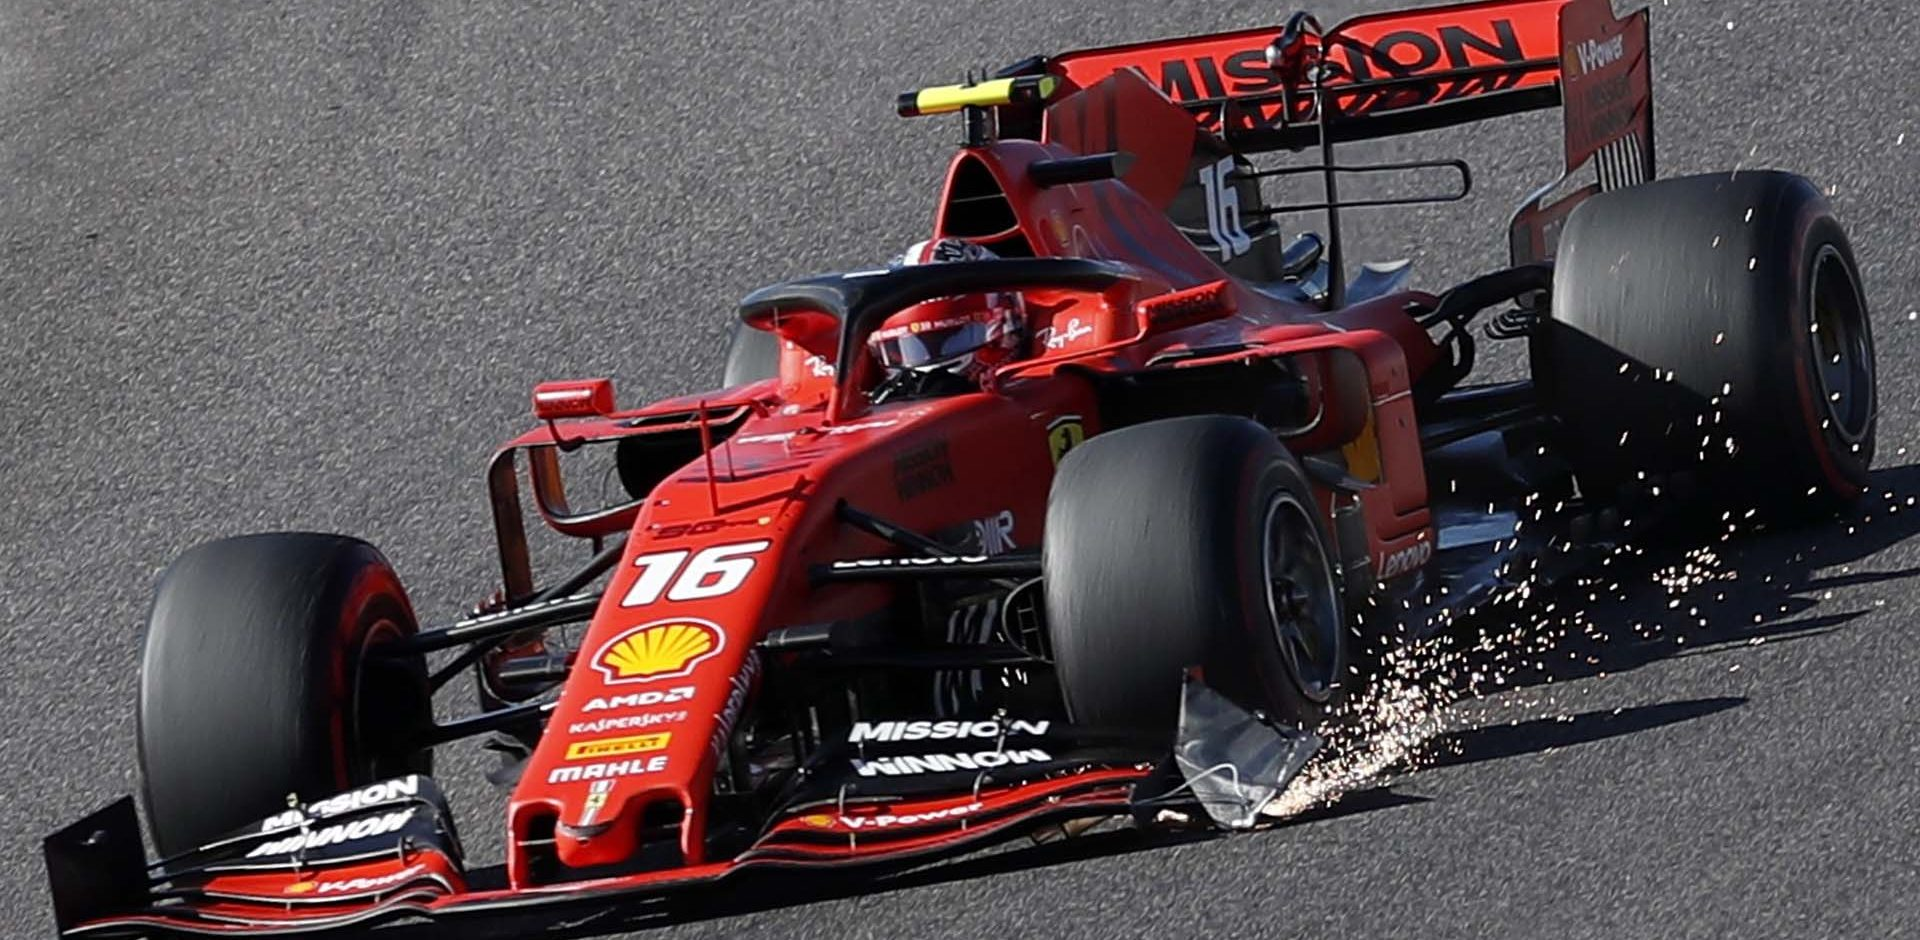 Formula One F1 - Japanese Grand Prix - Suzuka Circuit, Suzuka, Japan - October 13, 2019. Ferrari's Charles Leclerc with a damaged front wing during the race. REUTERS/Issei Kato